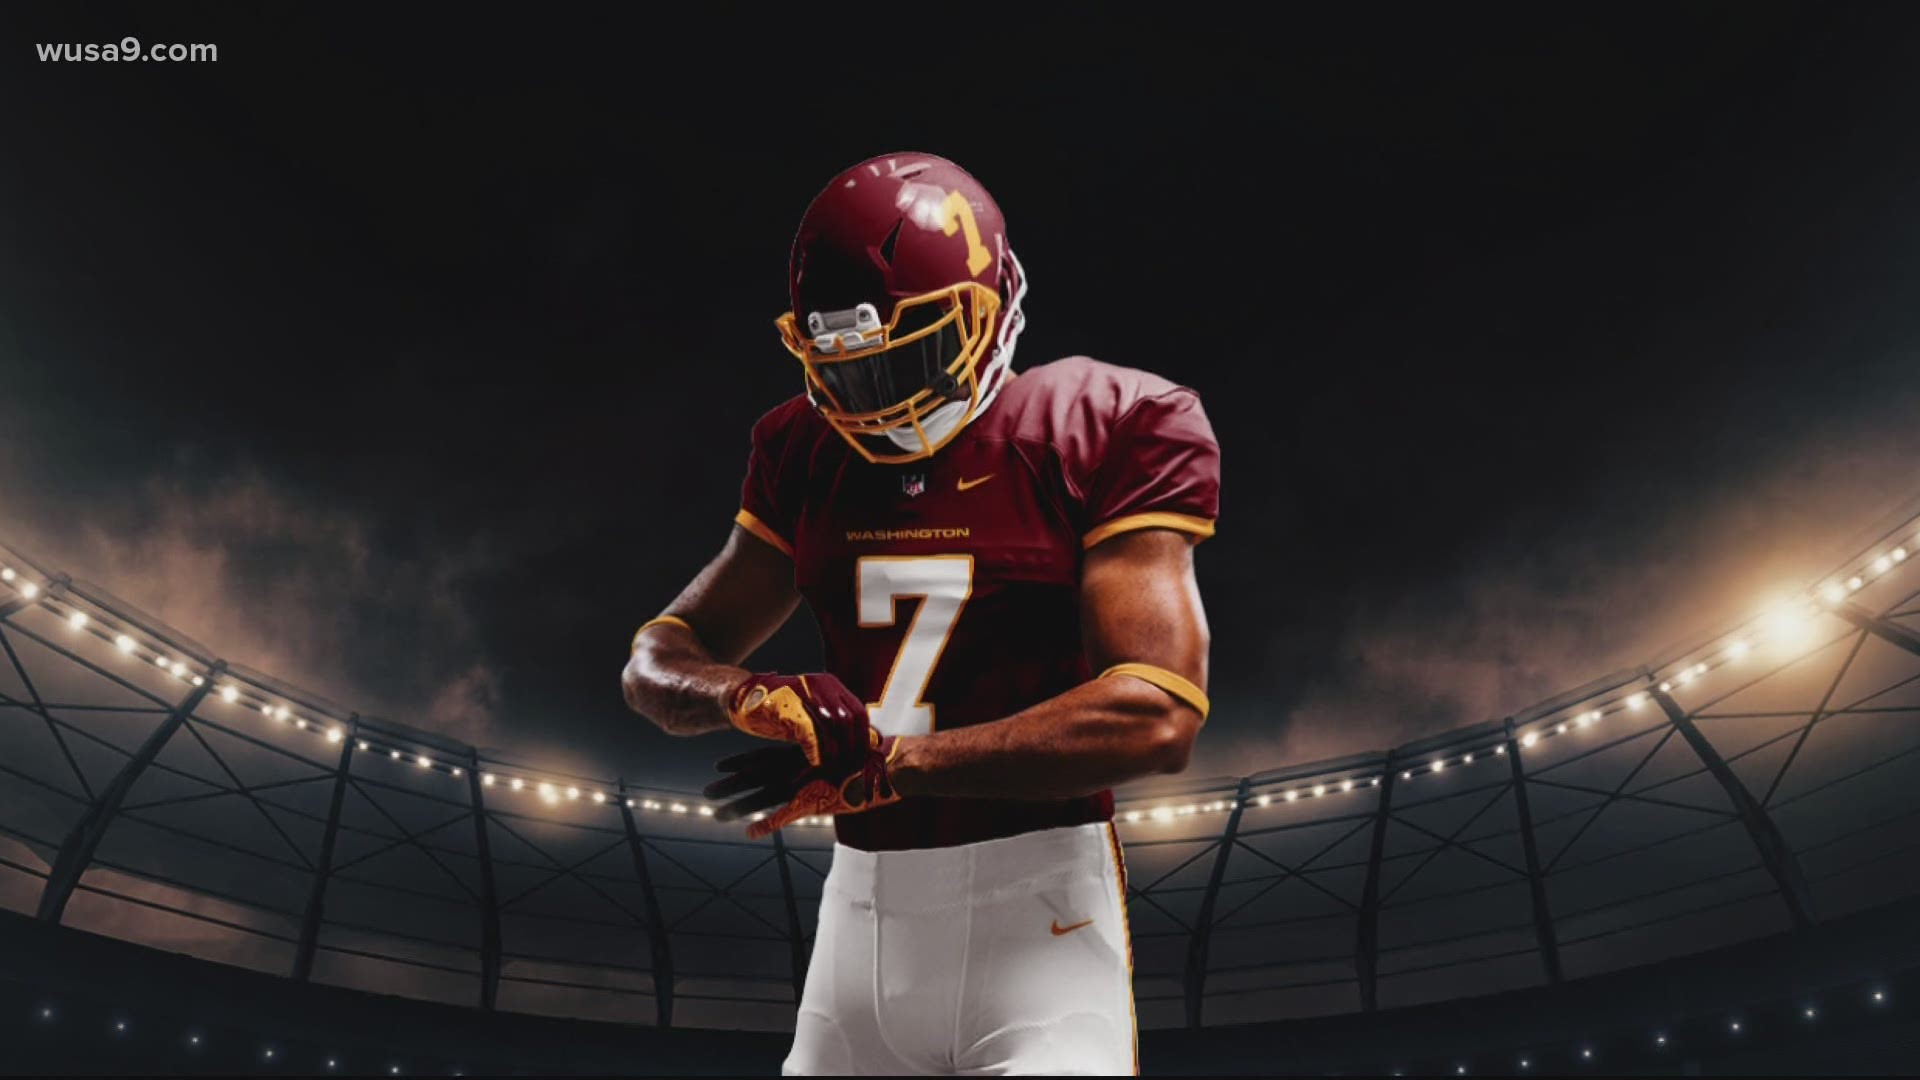 Dc S New Nfl Name Washington Football Team Just For 2020 Season Wusa9 Com